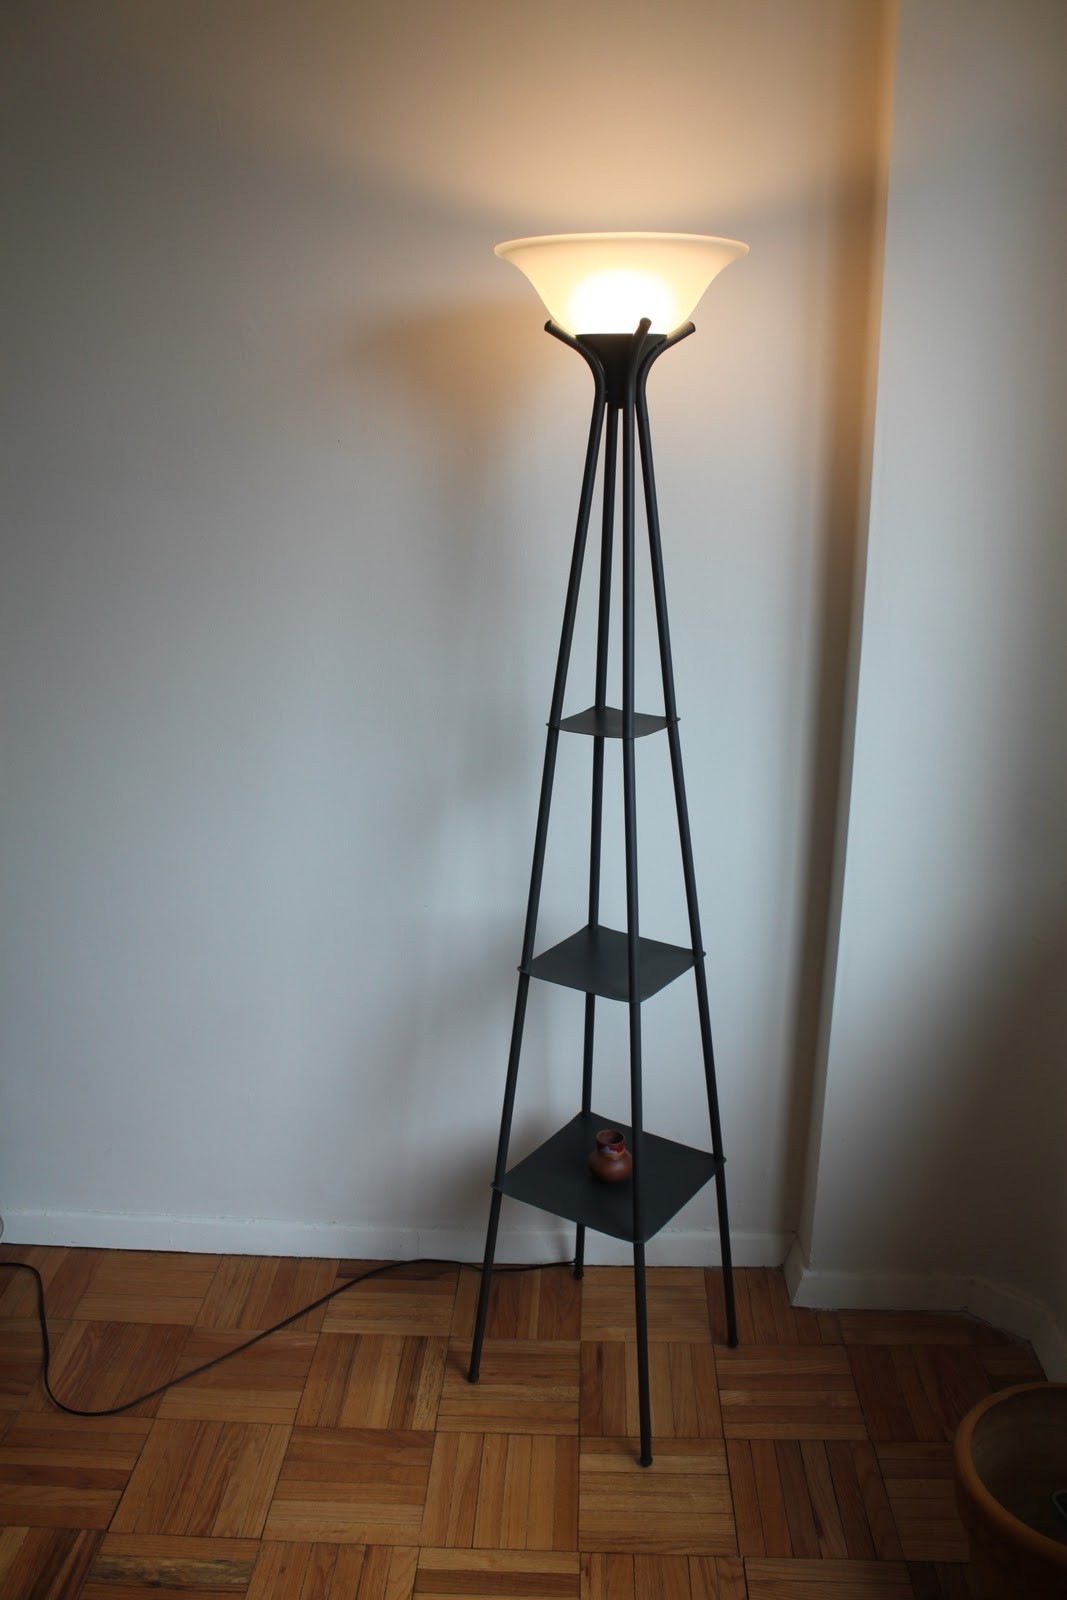 Floor Lamp Ideas Foter On With Shelves SMUpzVq